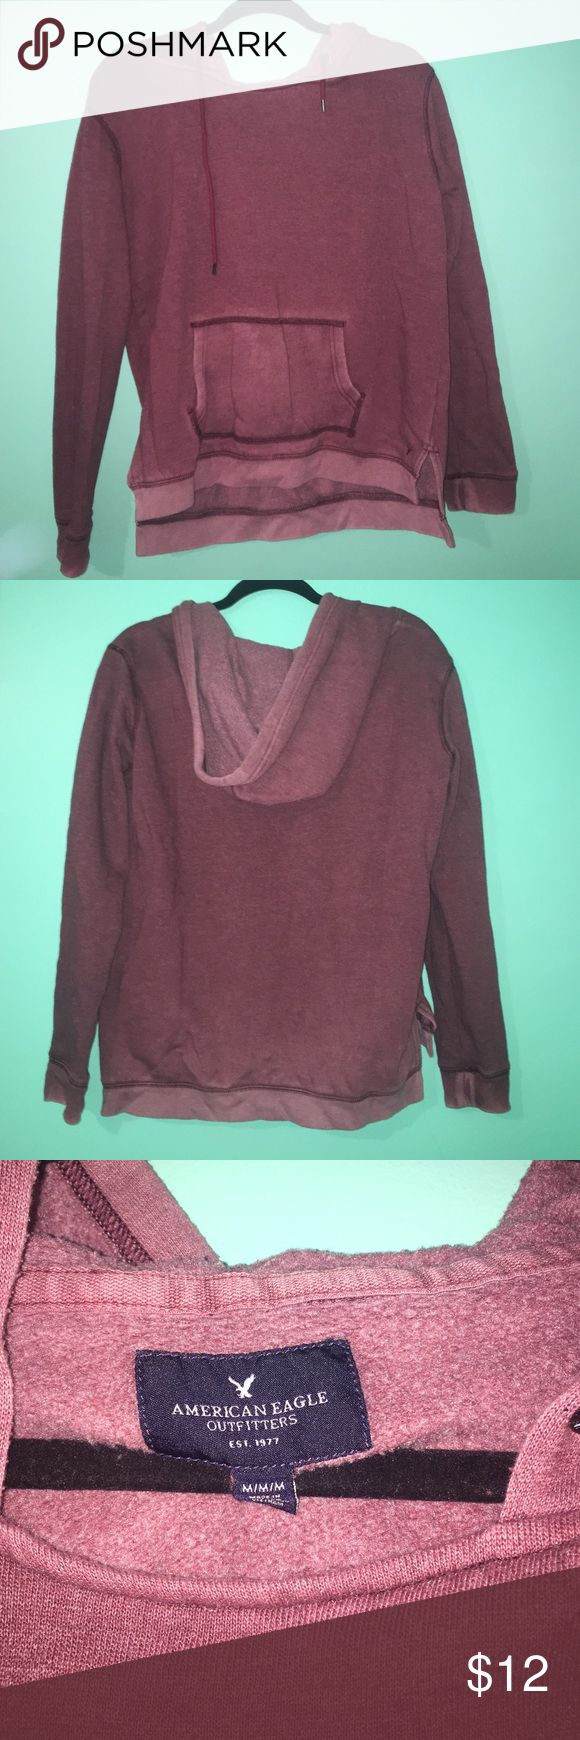 American Eagle Sweatshirt Maroon sweatshirt with: strings, front pocket, & a hood. Worn less than a handful of times. American Eagle Outfitters Tops Sweatshirts & Hoodies